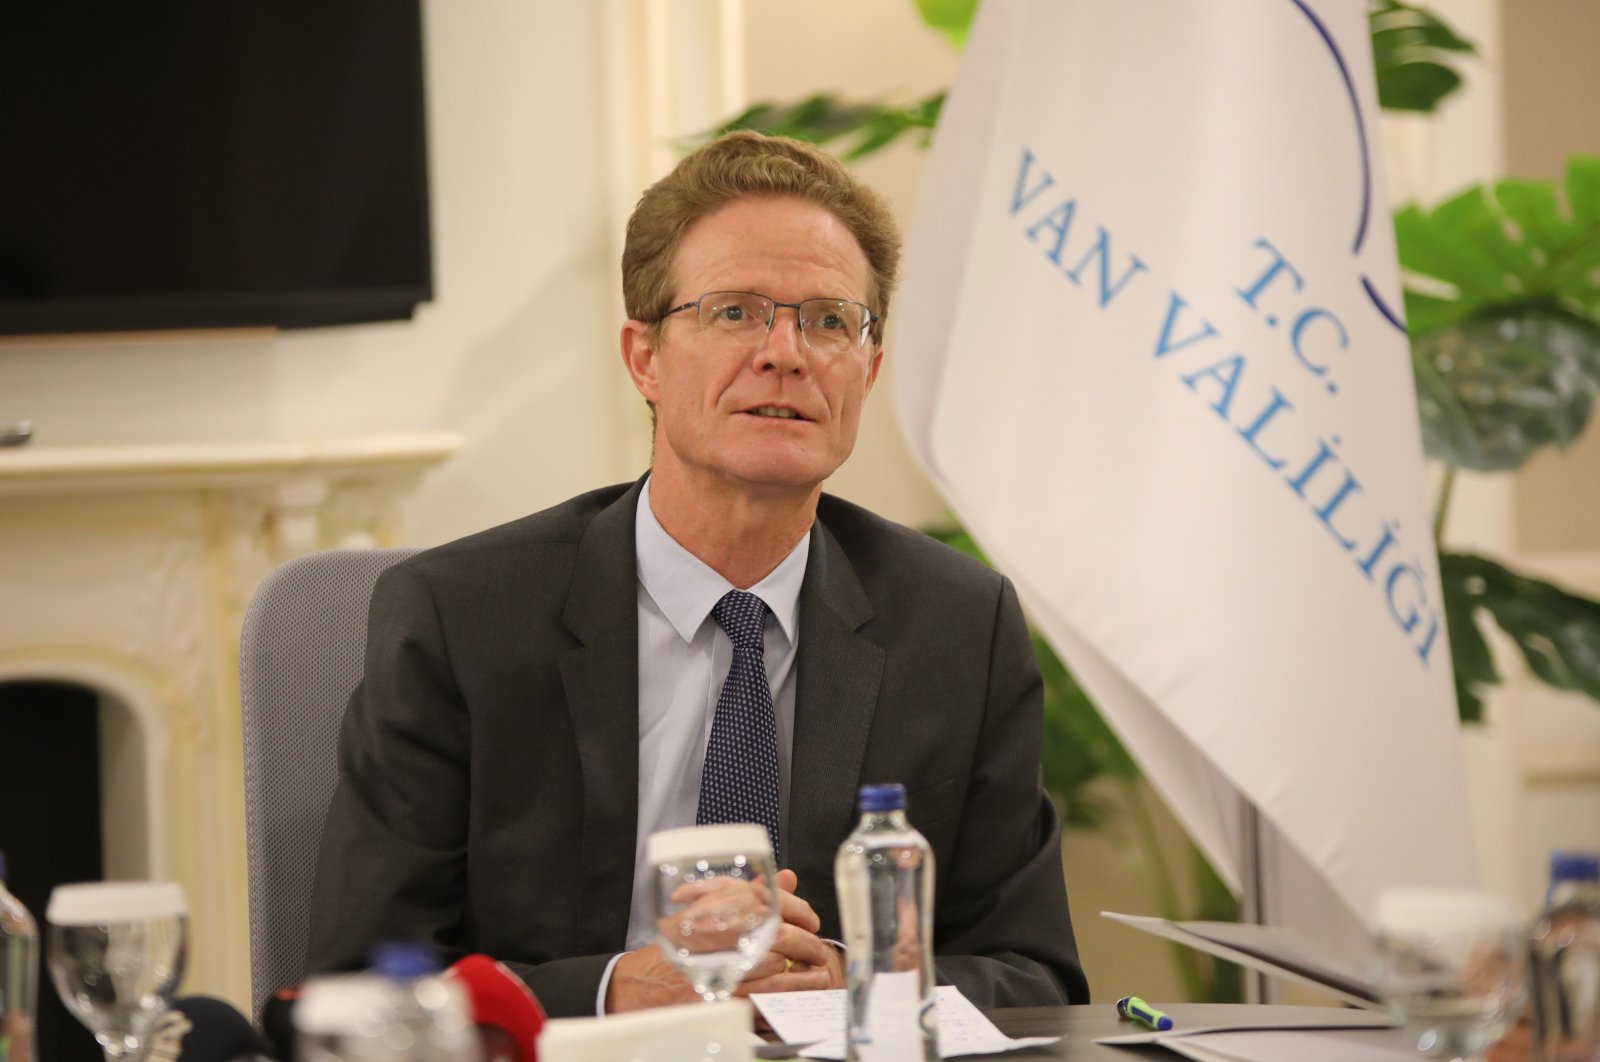 The head of the EU Delegation to Turkey, Nikolaus Meyer-Landrut, speaking at a press conference in eastern Van province, Turkey, Sept. 13, 2021 (AA Photo)